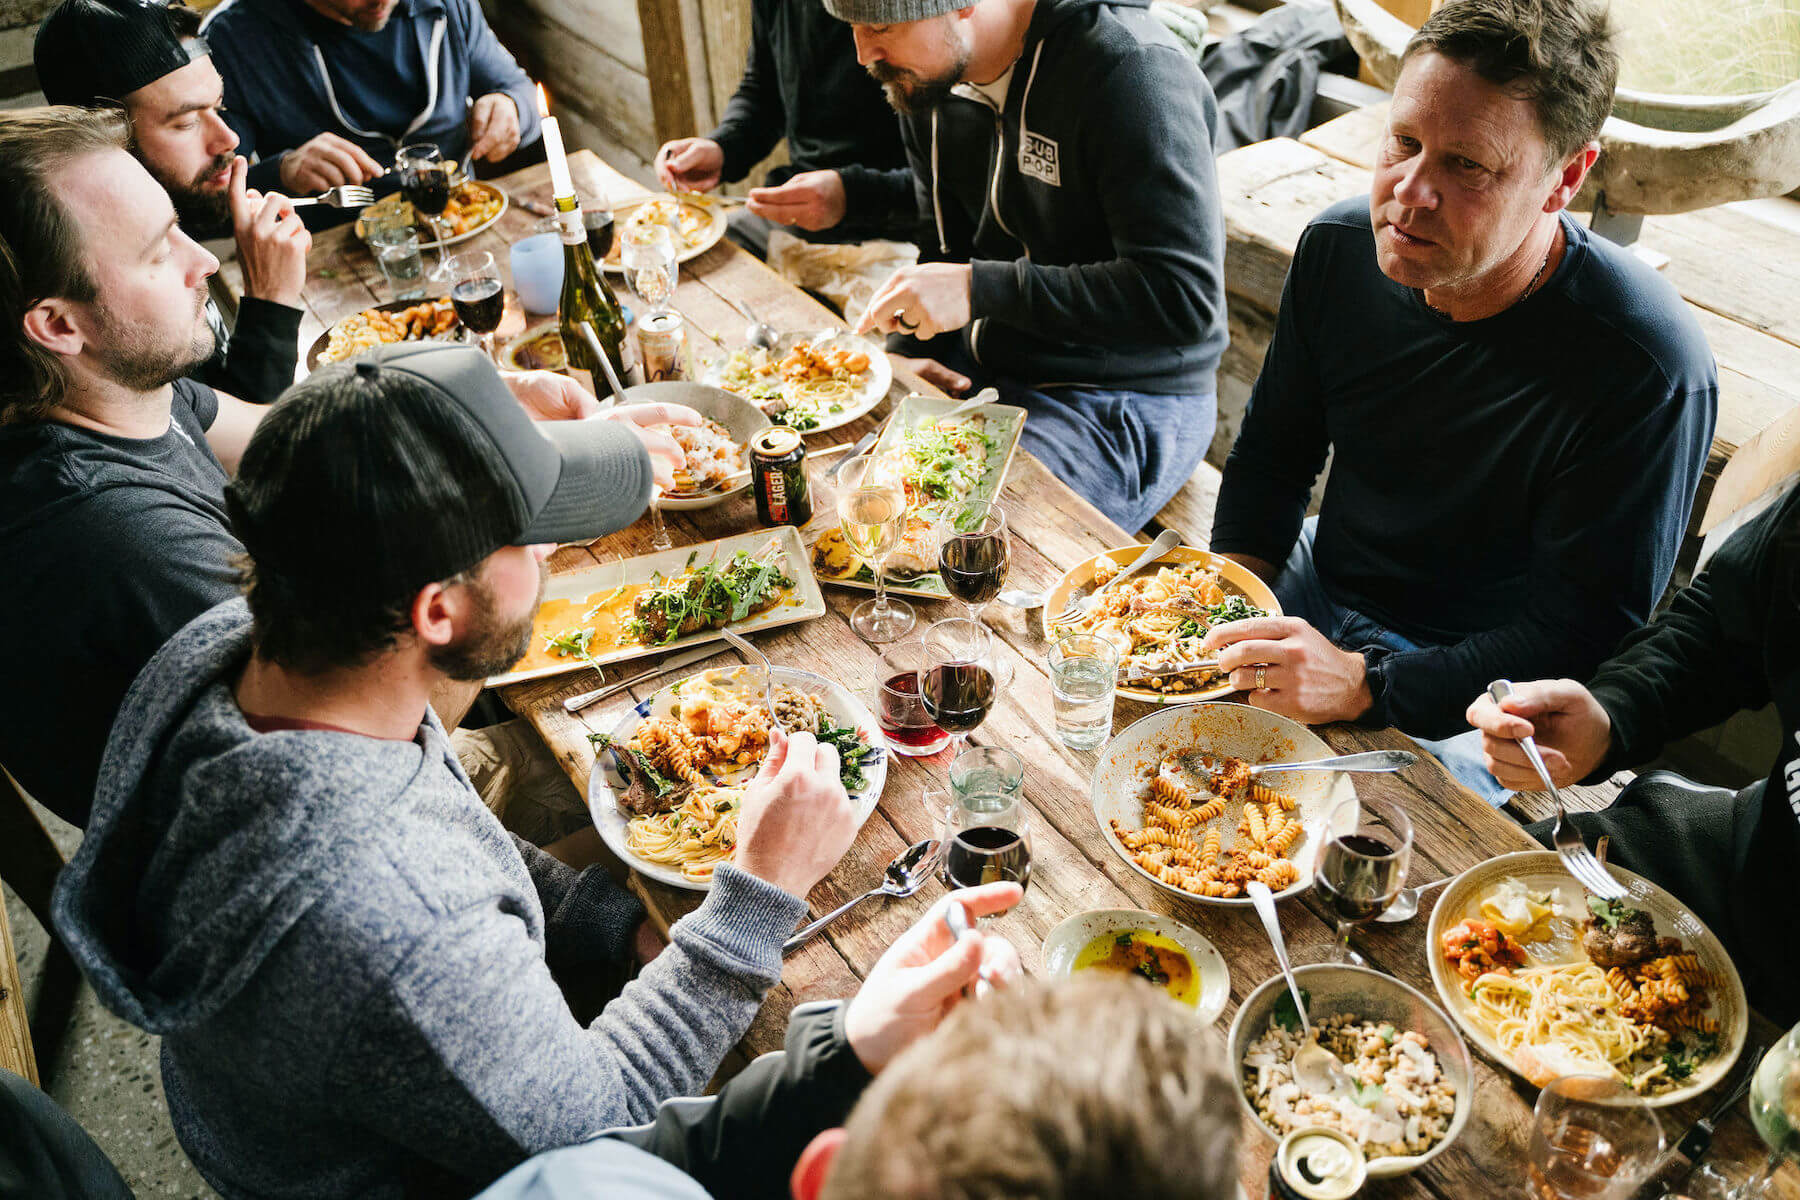 People gathering around a table for food